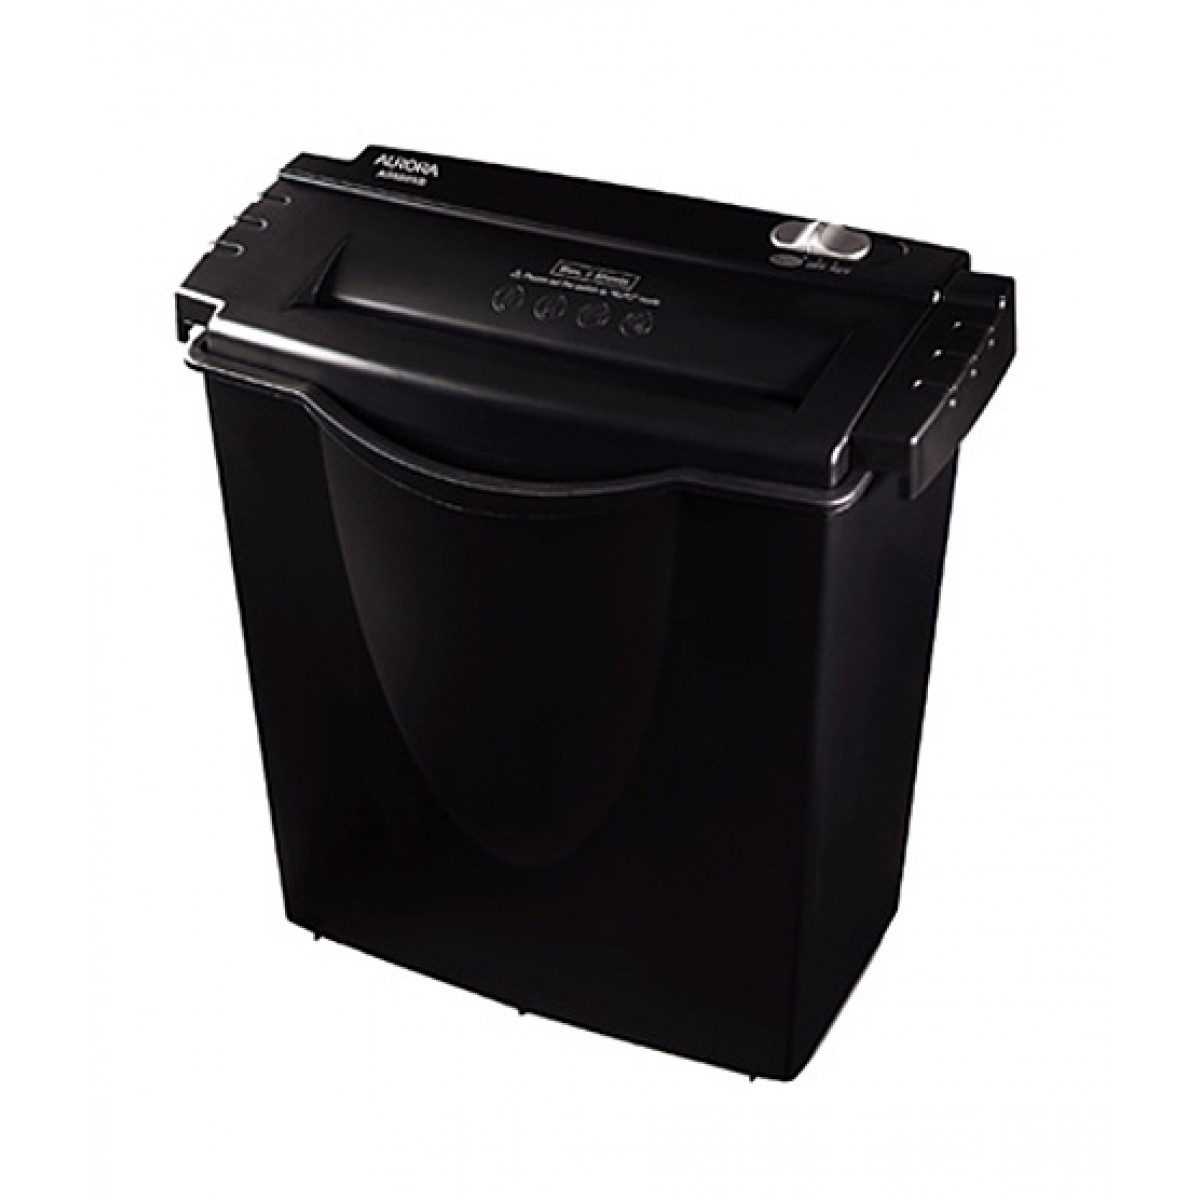 Aurora Paper Shredder (AS680SB)